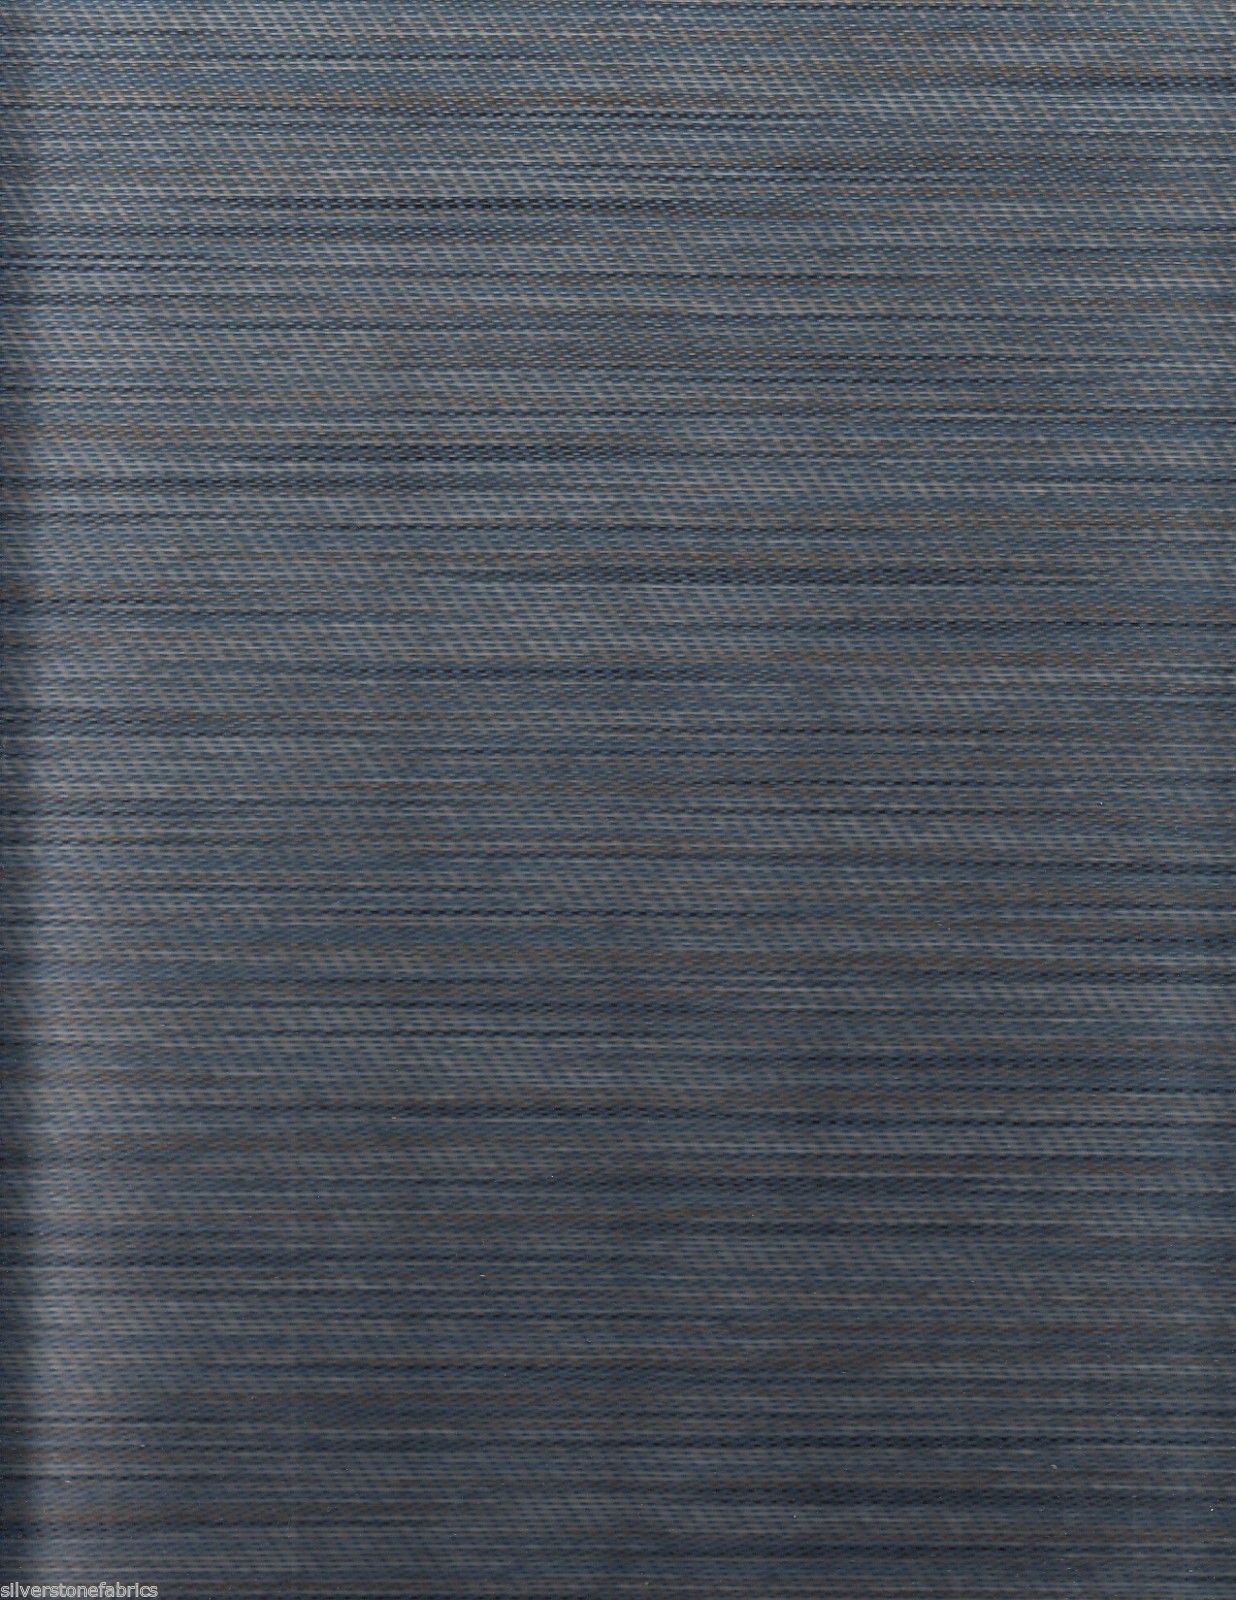 63.125 yds Maharam Upholstery Fabric Vary Striae MCM Astral Blue 465933-002 GM3